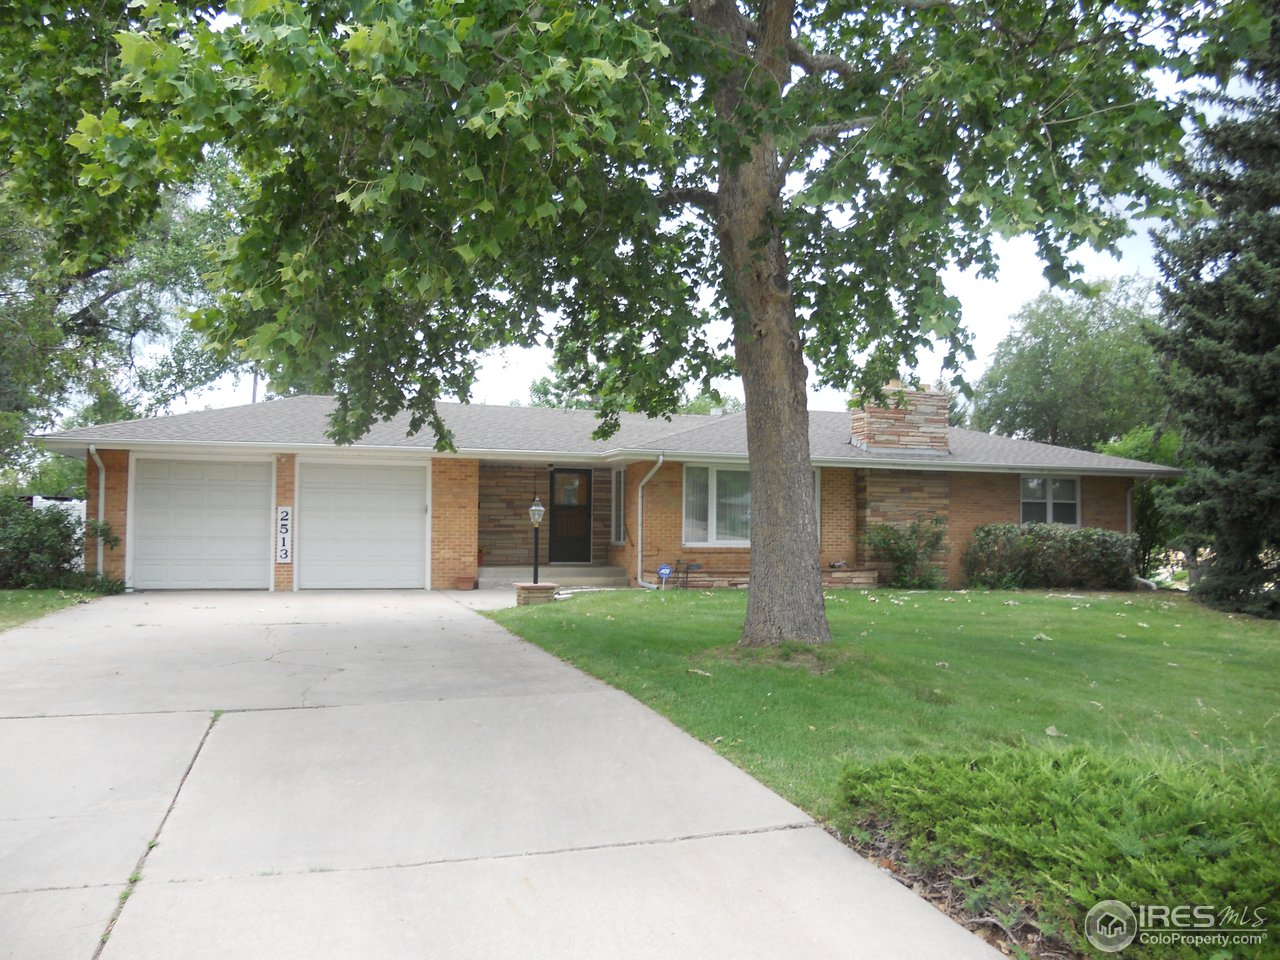 Awesome well maintained clean home in established neighborhood, great location. Open floor plan. Large spacious lot with mature landscaping. Family room added later than original build. New carpet. Sprinkler System.  Some modernization done in recent years. Three Fireplaces. W/D Hookup main level. This home truly is made for a family that enjoys extra space, has a large game room for billiards, card parties, etc. Listing Agent related to Sellers. Prop Taxes quoted are with Senior Tax Exemption